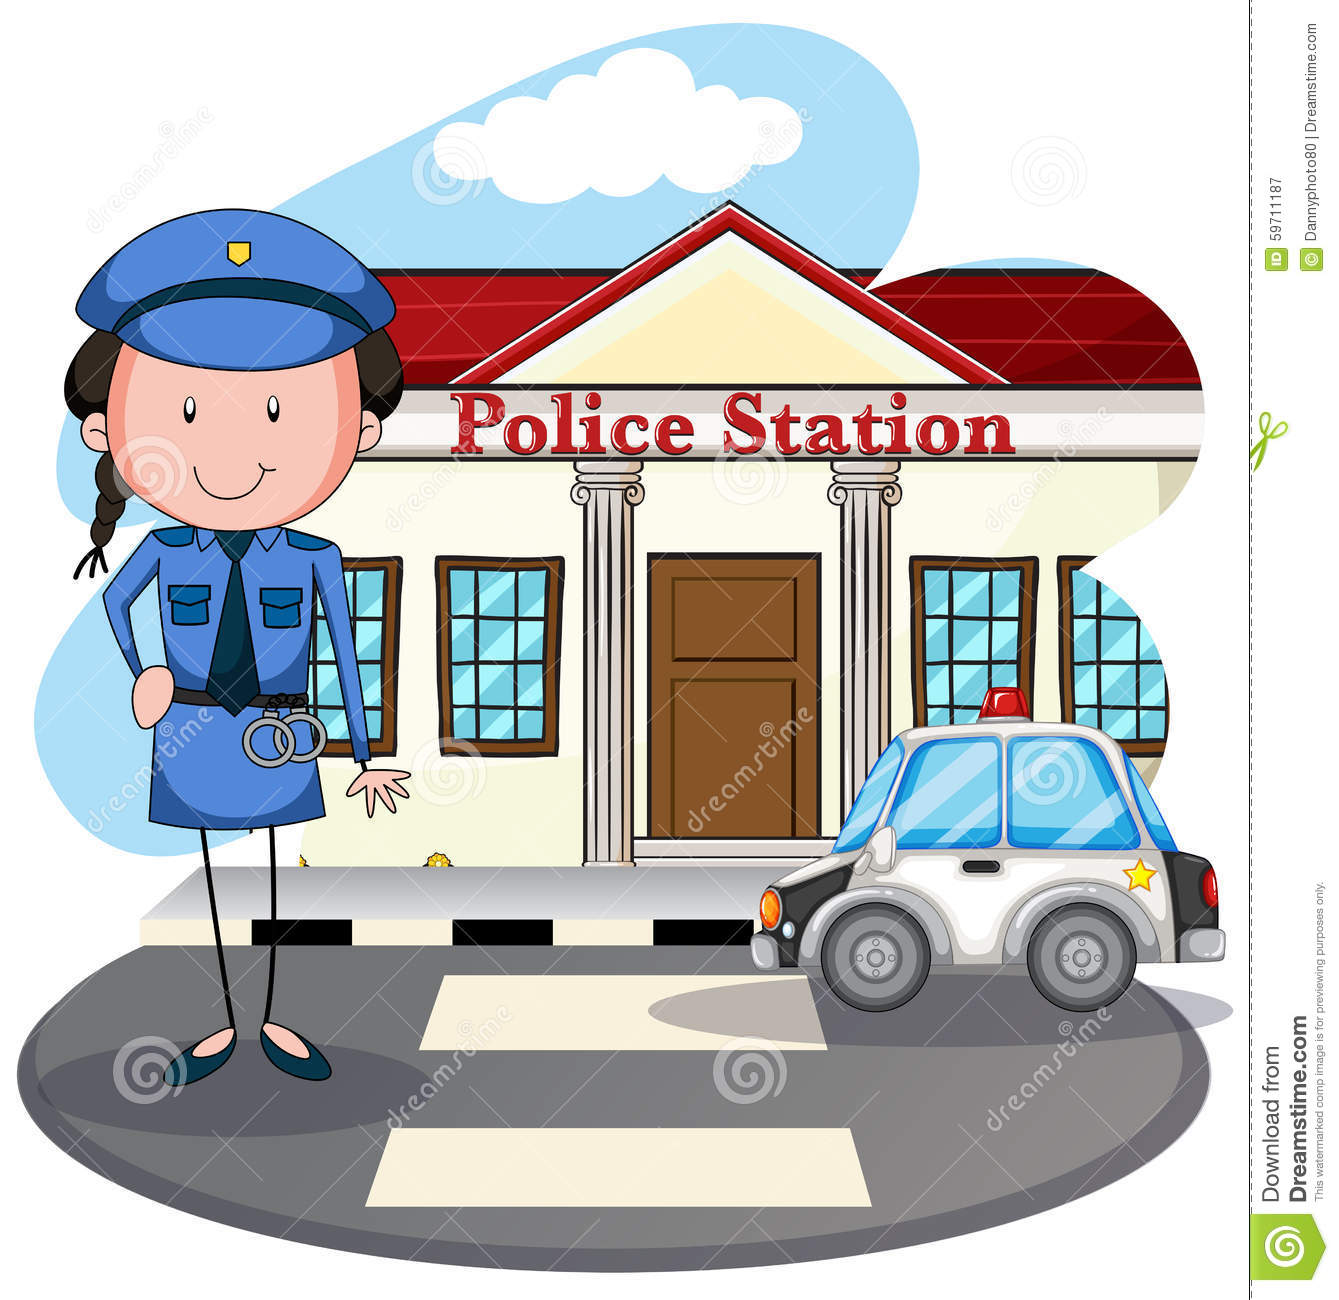 Working of women police station in